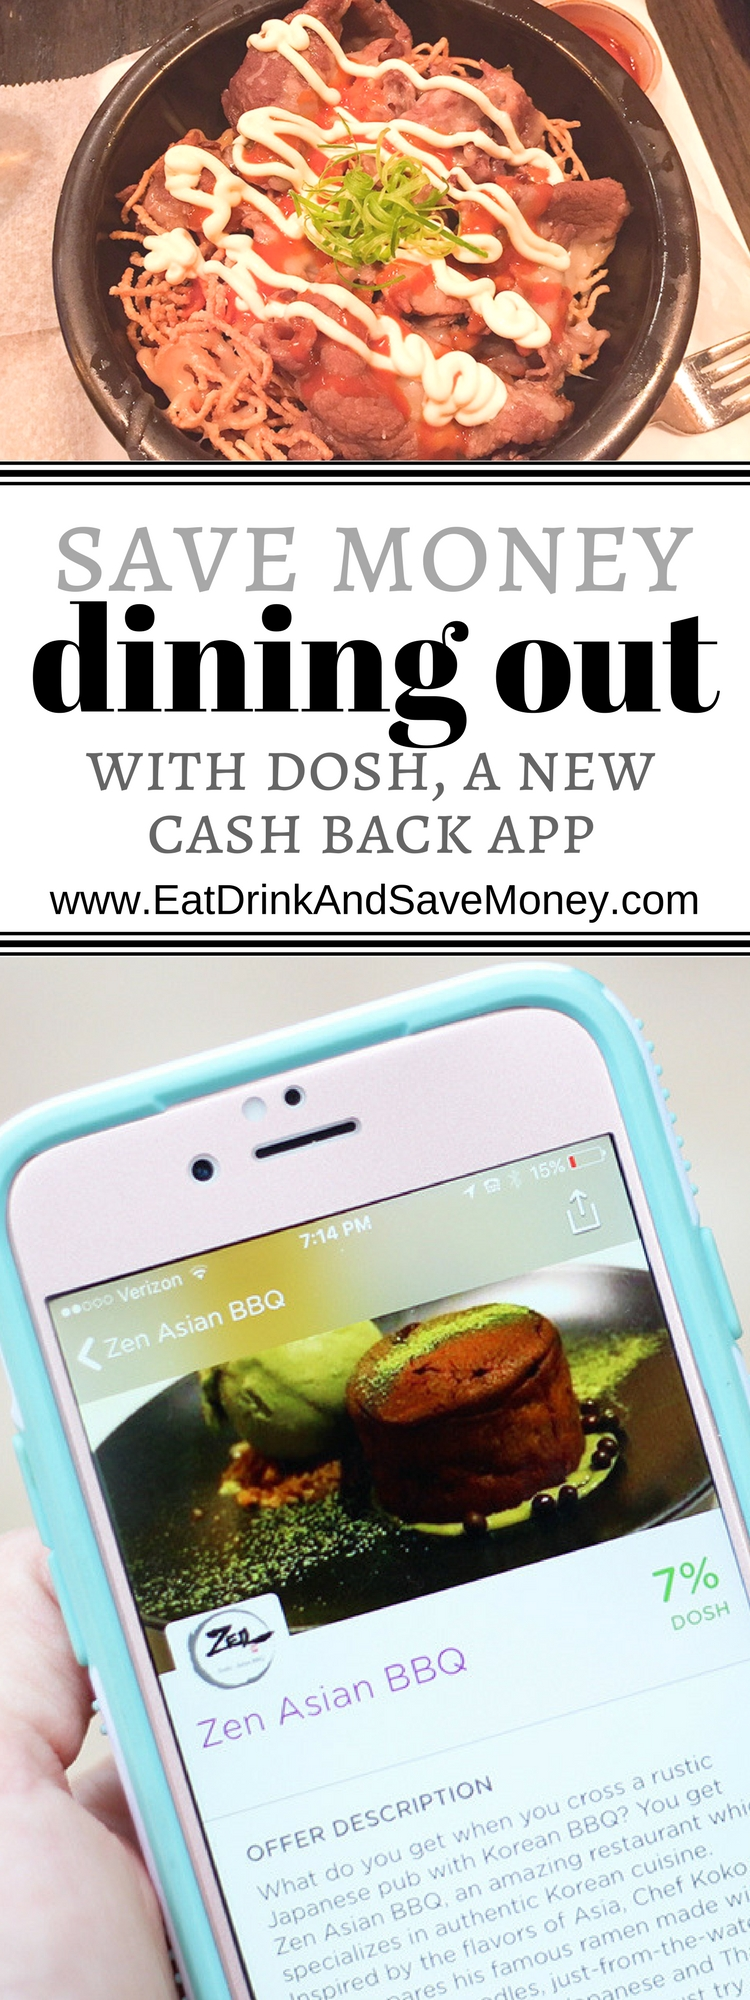 Save Money Dining out with DOSH, a new cash back app. See how this blogger saved nearly 10% dining out with this app!